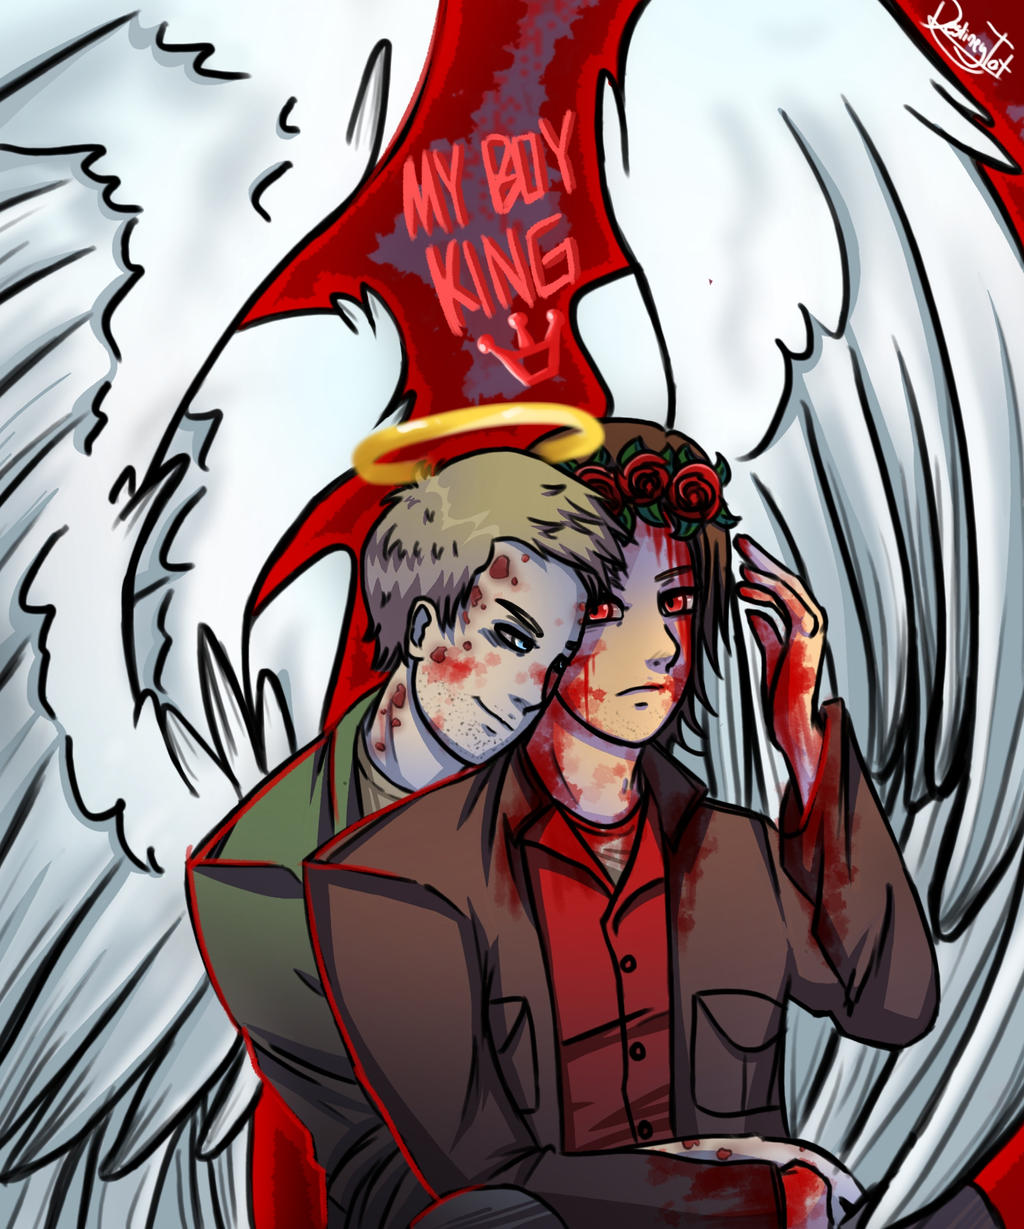 Pin Supernatural Fanfiction on Pinterest